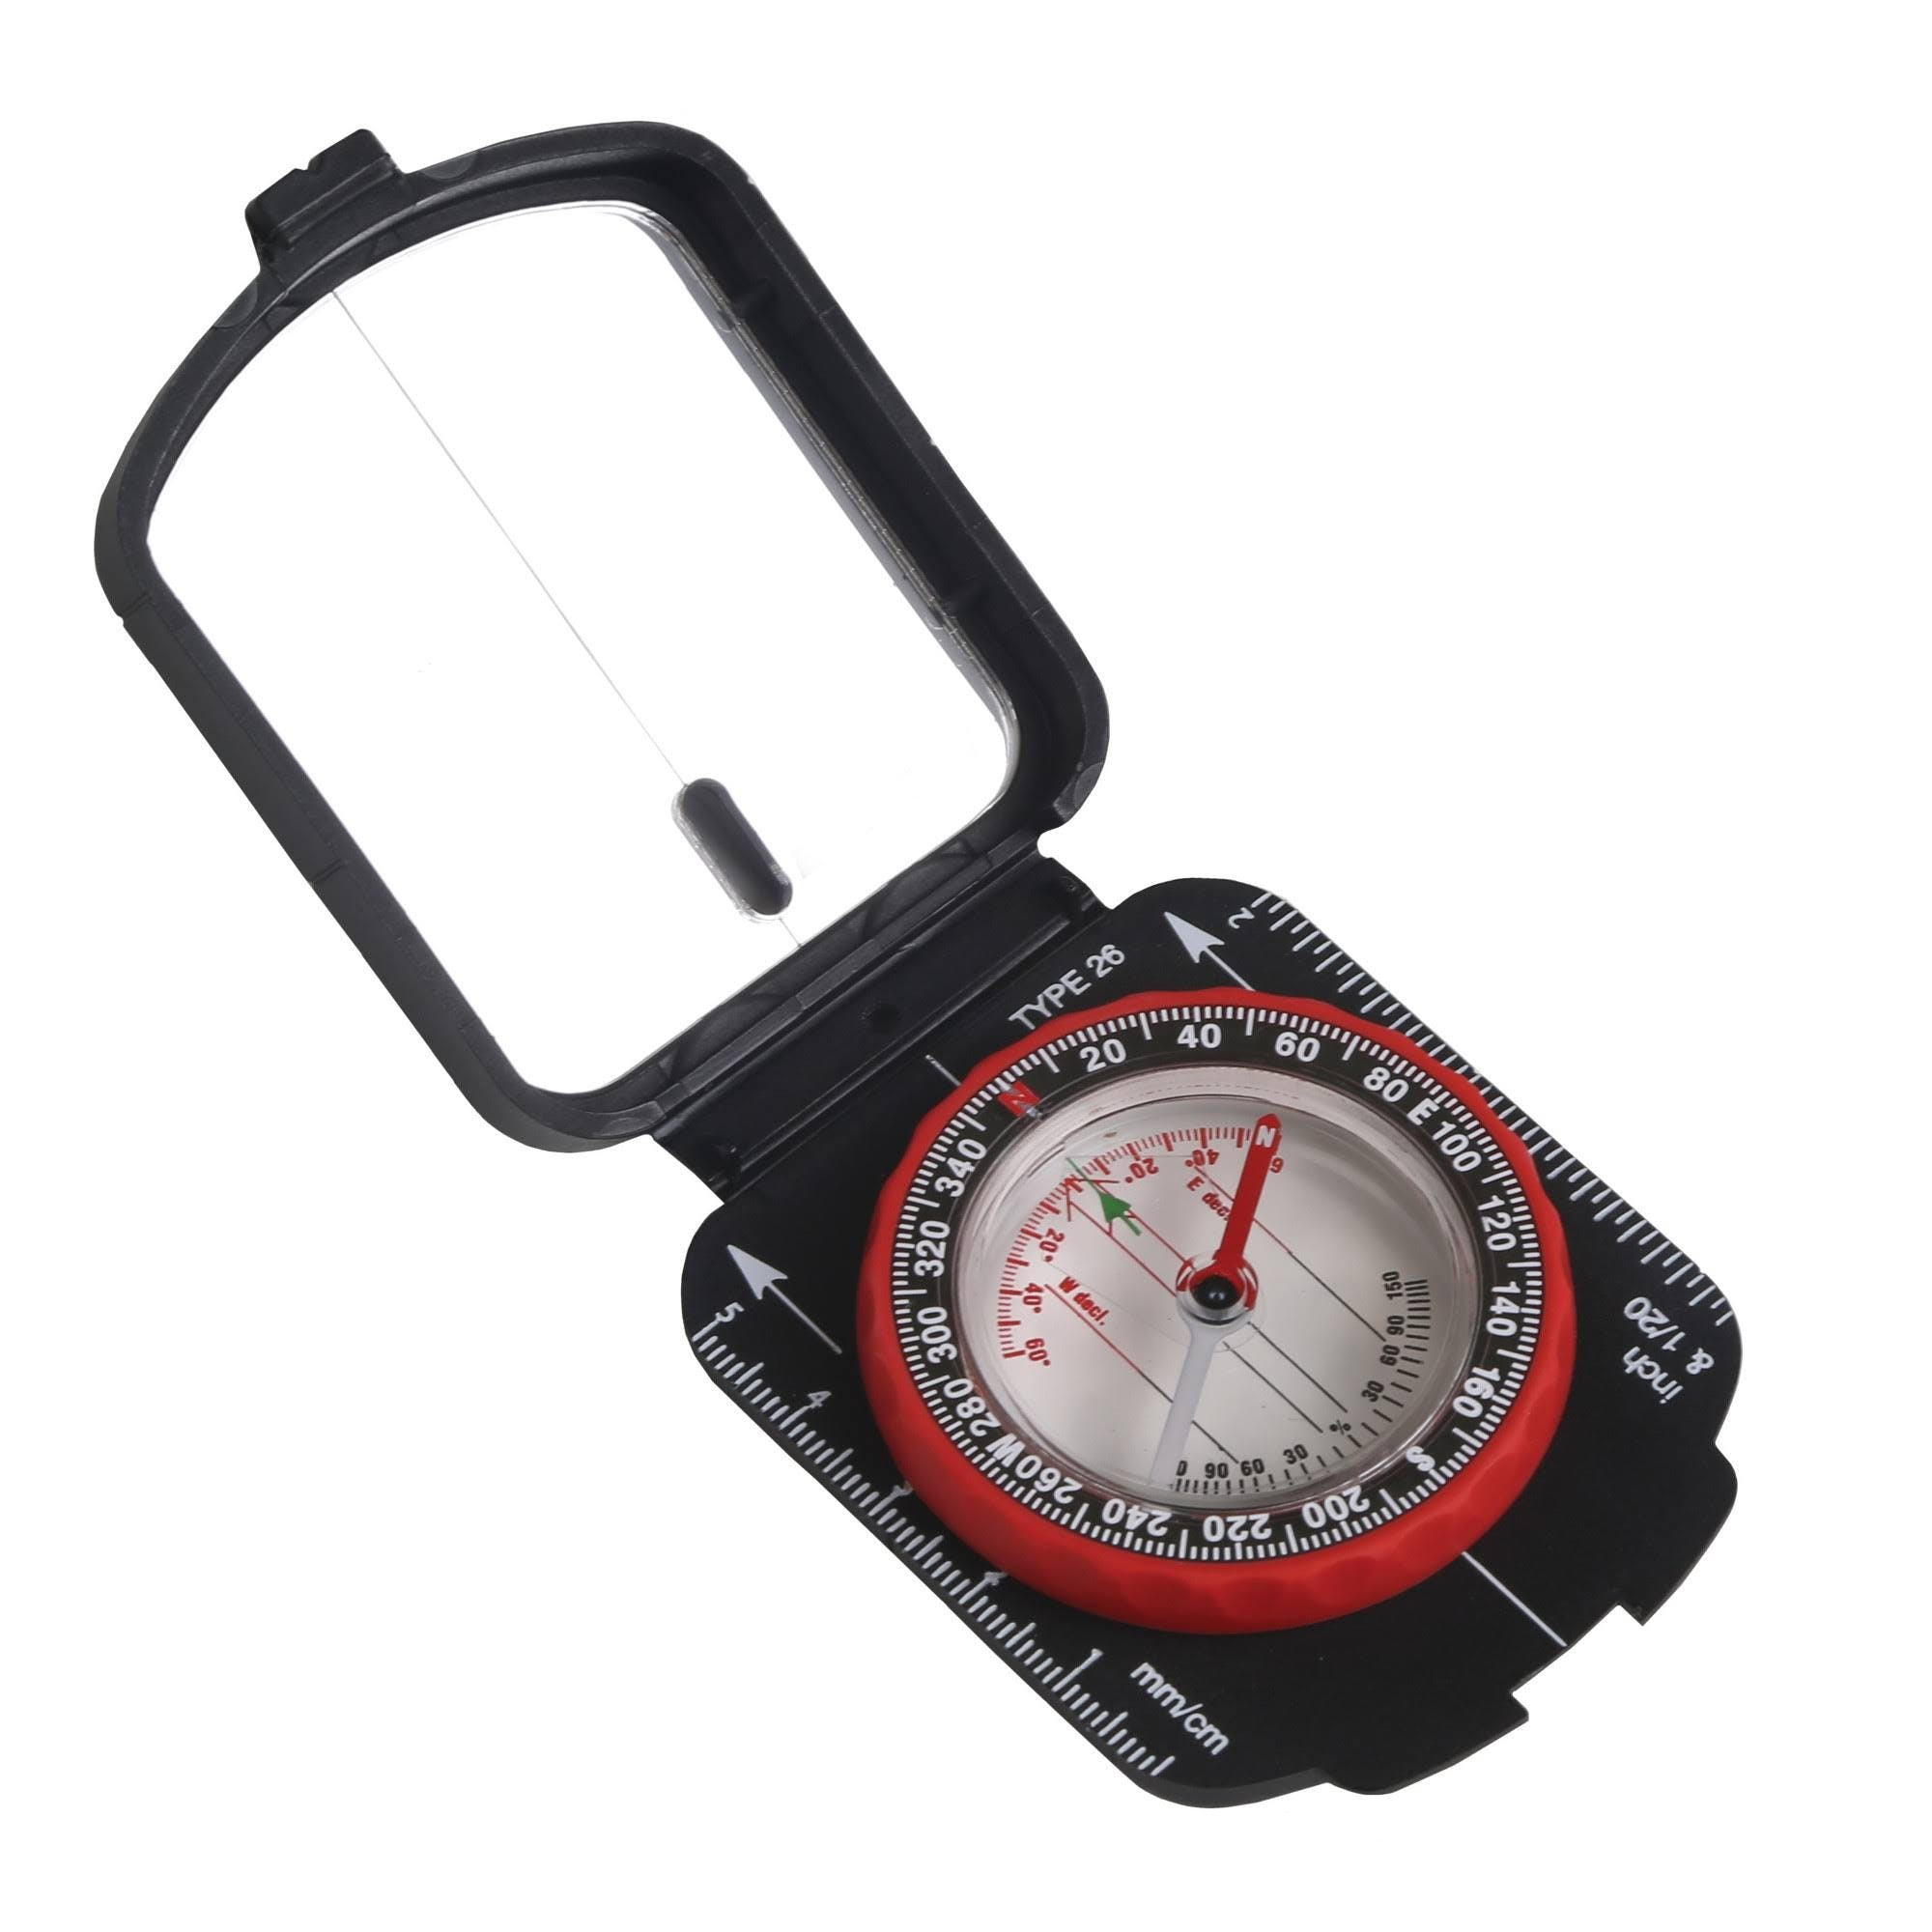 Stansport 553 - Multifunction Compass with Mirrored Cover